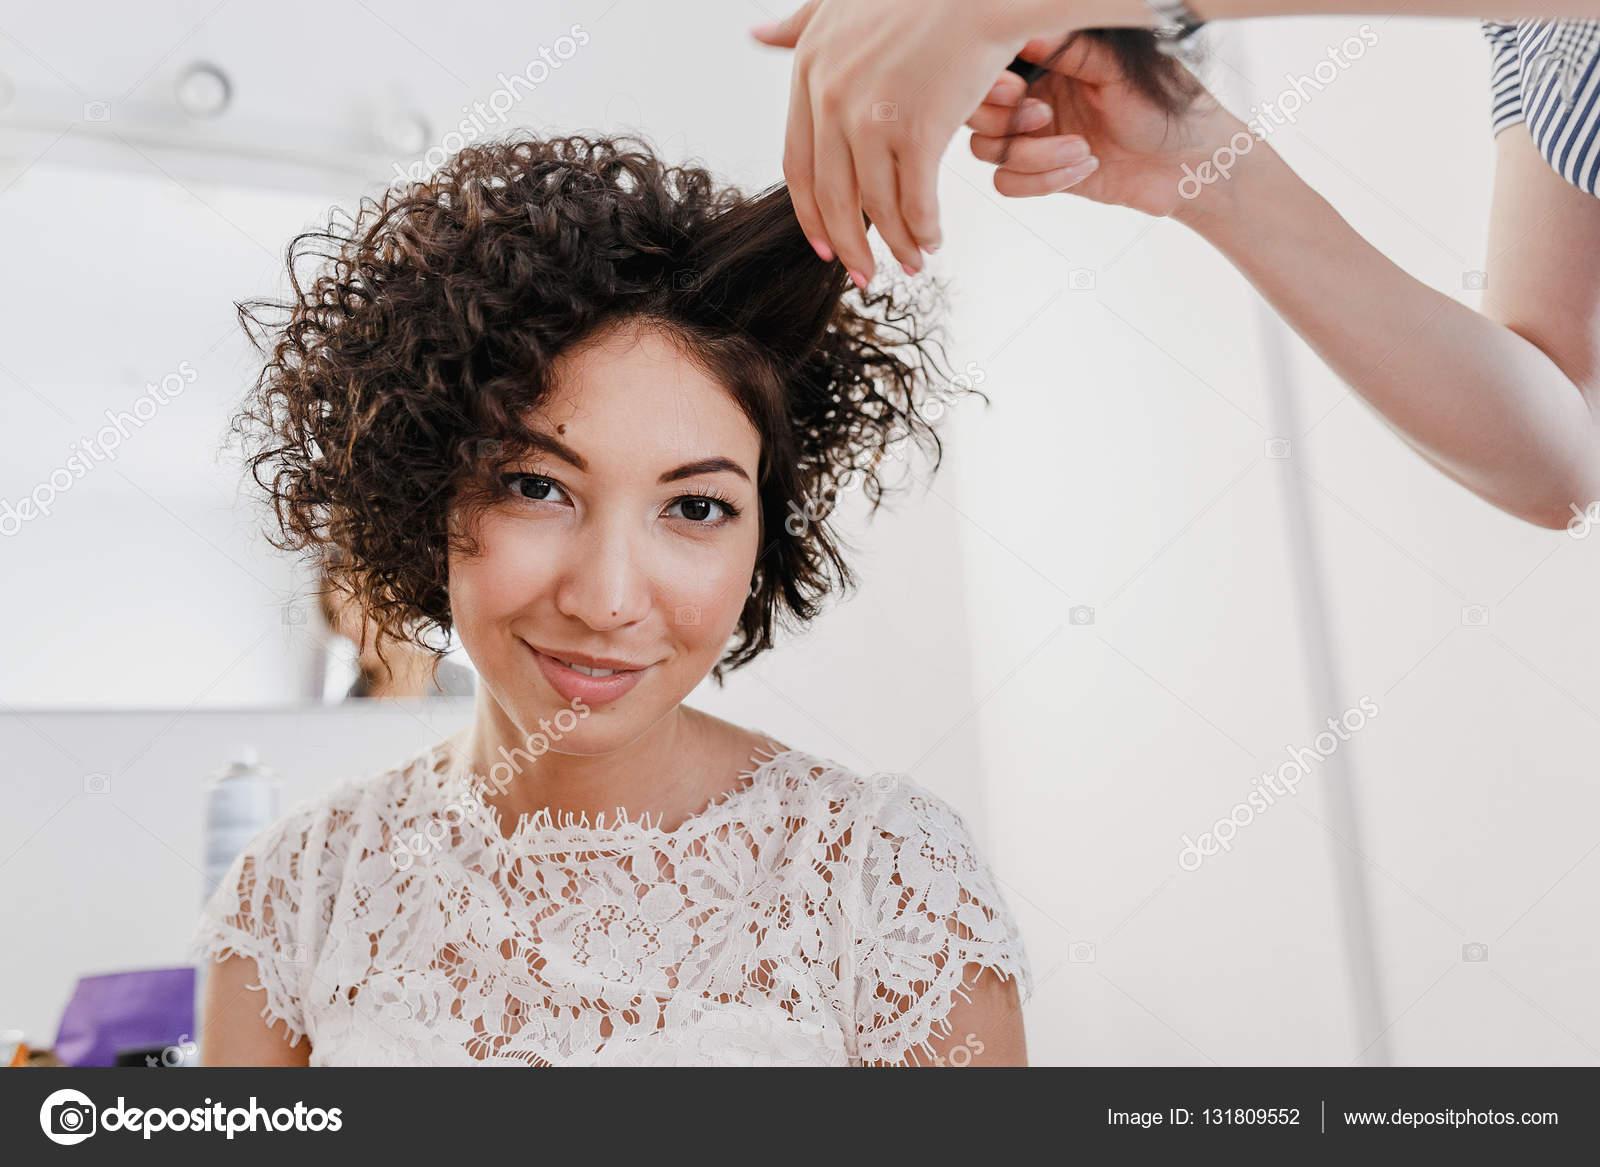 Professional hairdresser artist making curly hairstyle to charming ...